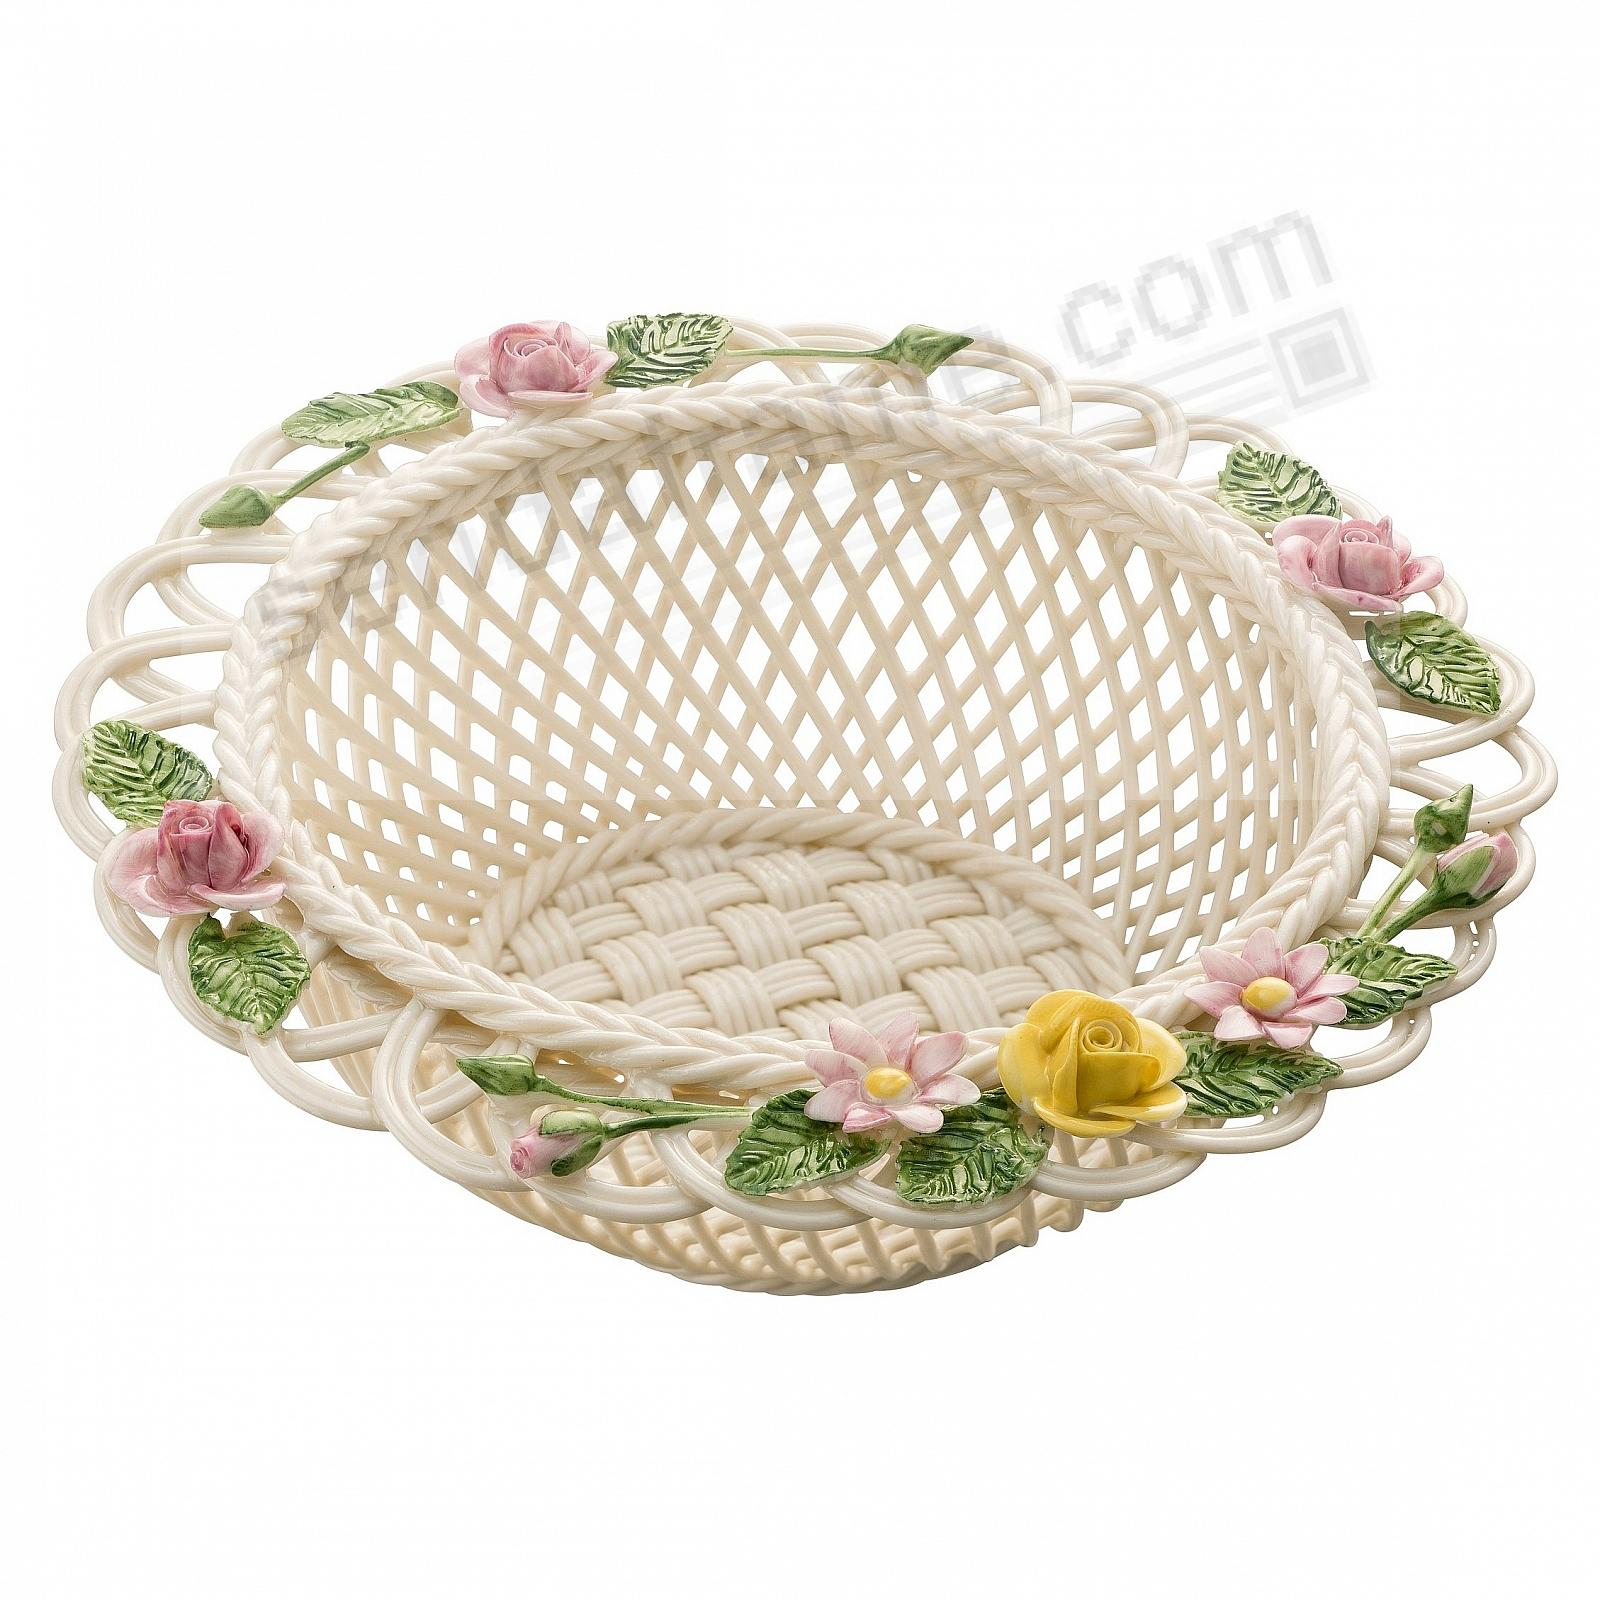 ROSE GEBERA Irish Porcelain Basket by Belleek®